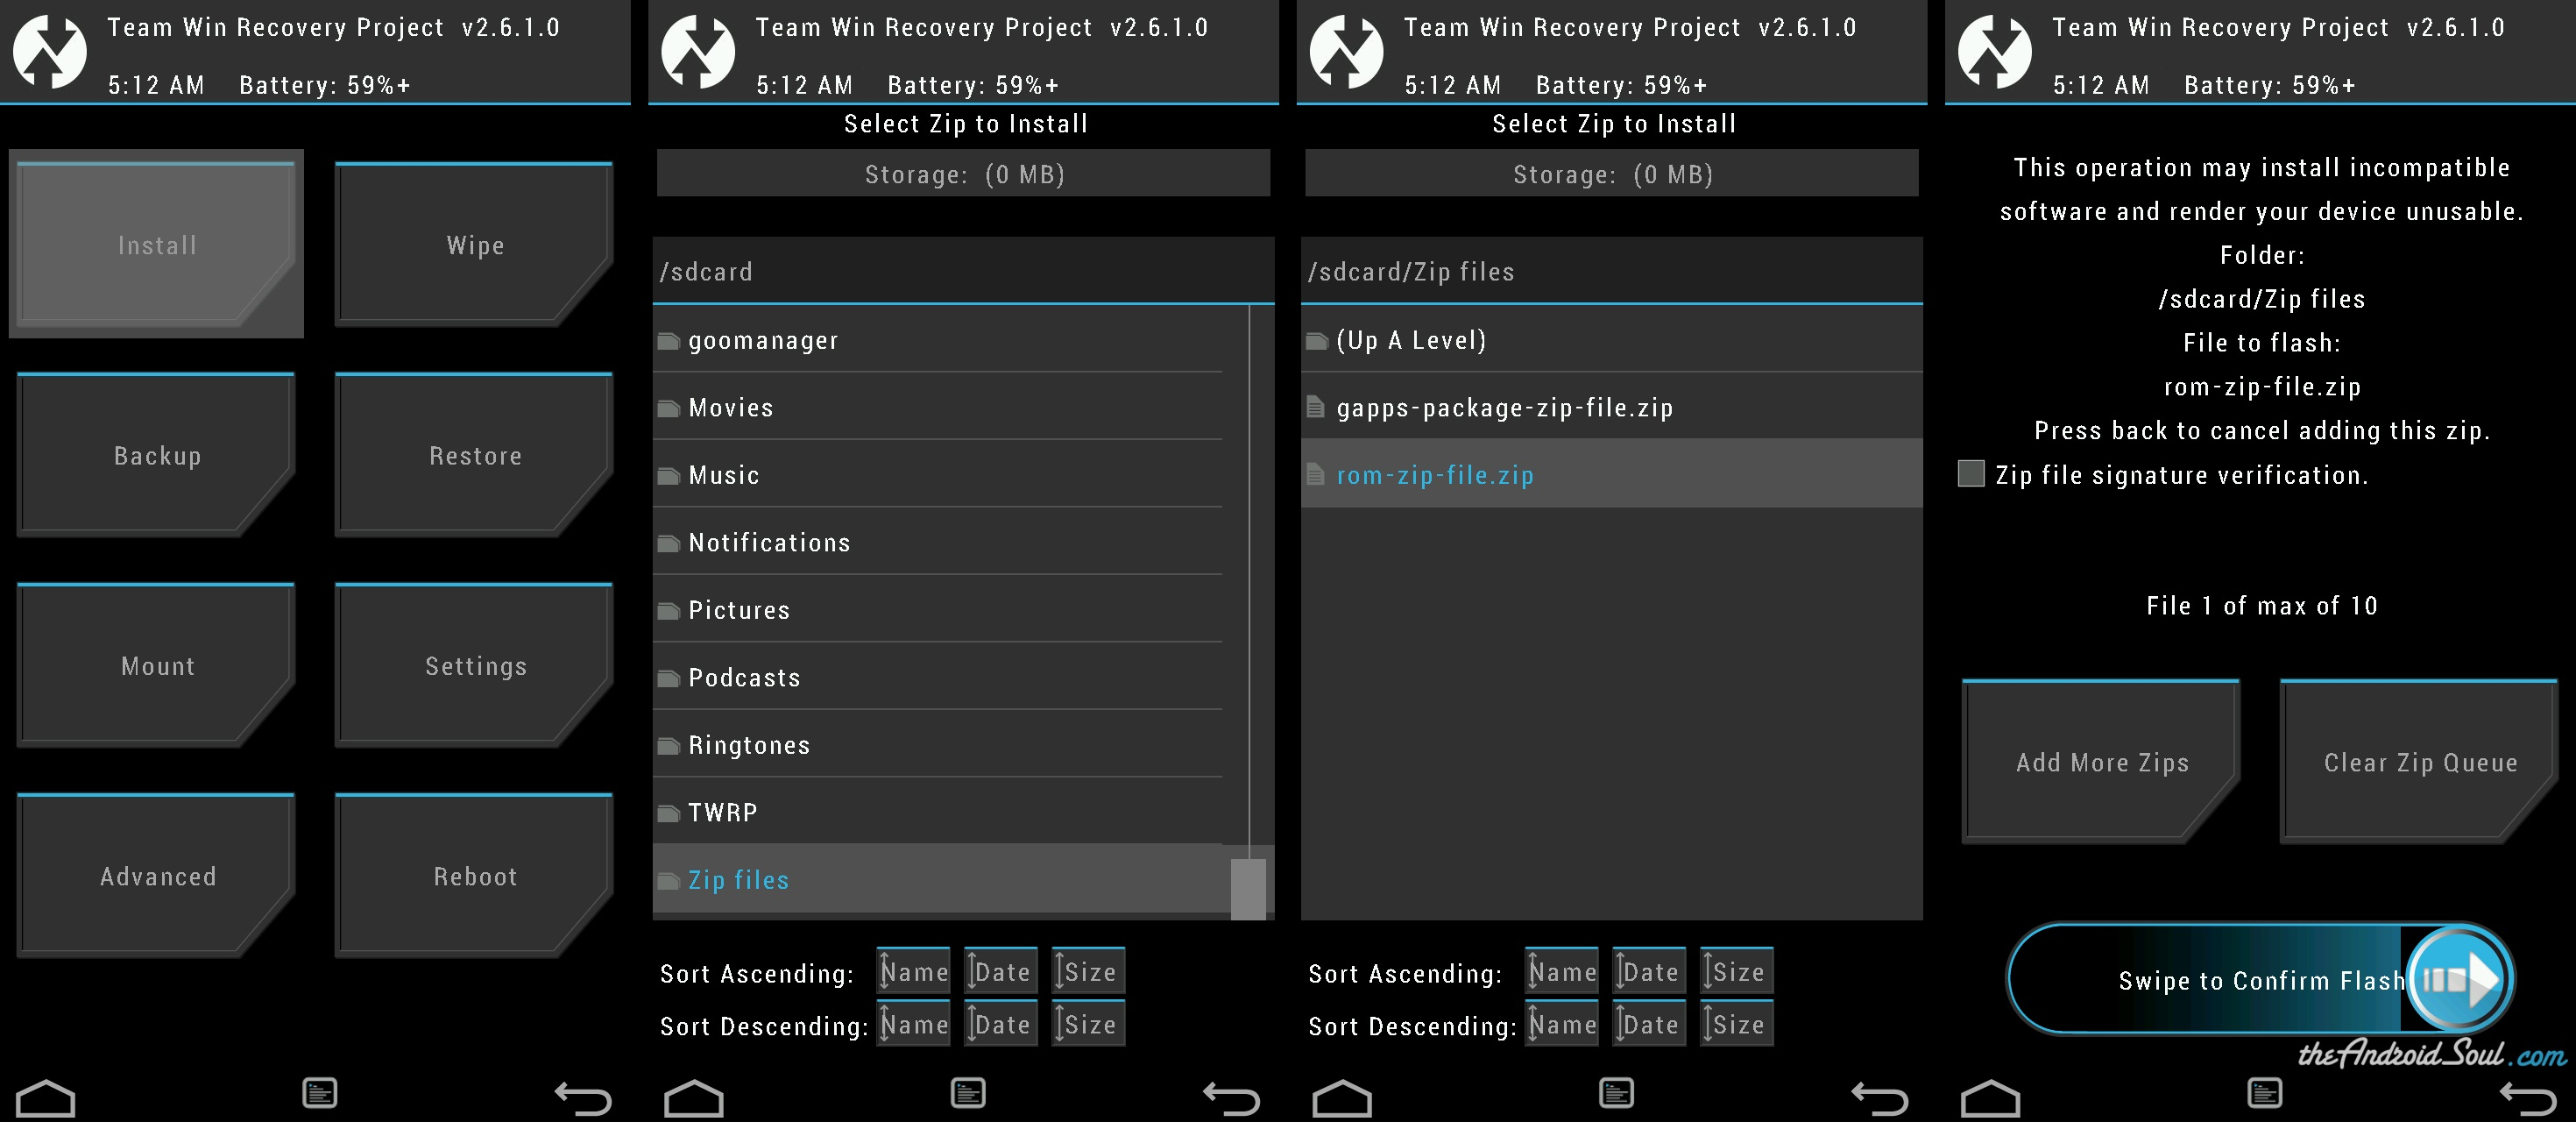 Flash-ROM-.zip-file-using-TWRP-recovery